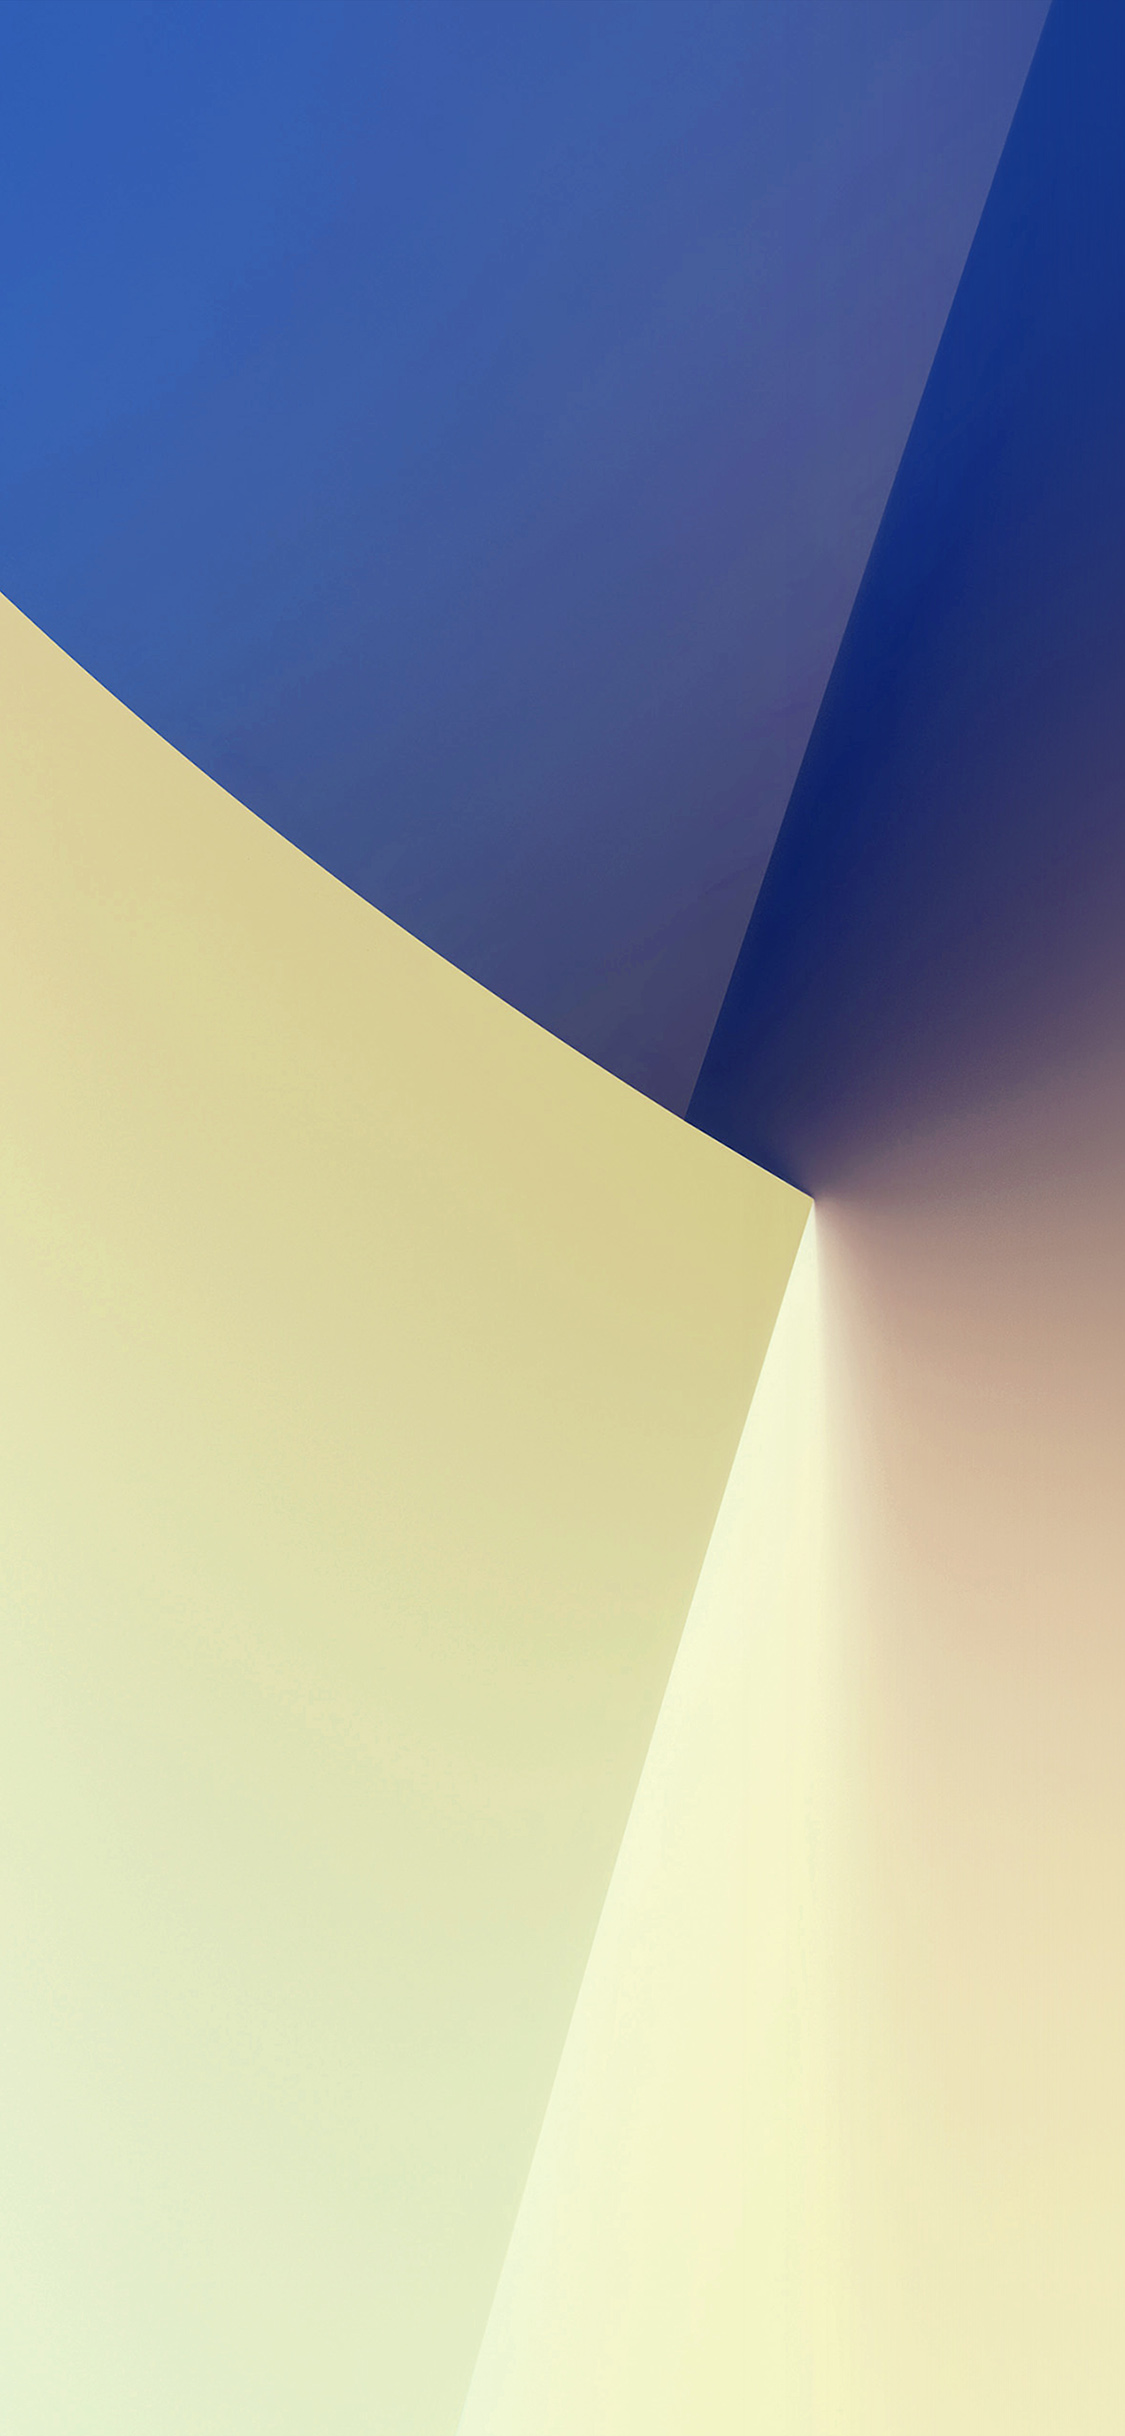 iPhonexpapers.com-Apple-iPhone-wallpaper-vs70-simple-minimal-polygon-blue-yellow-art-pattern-white